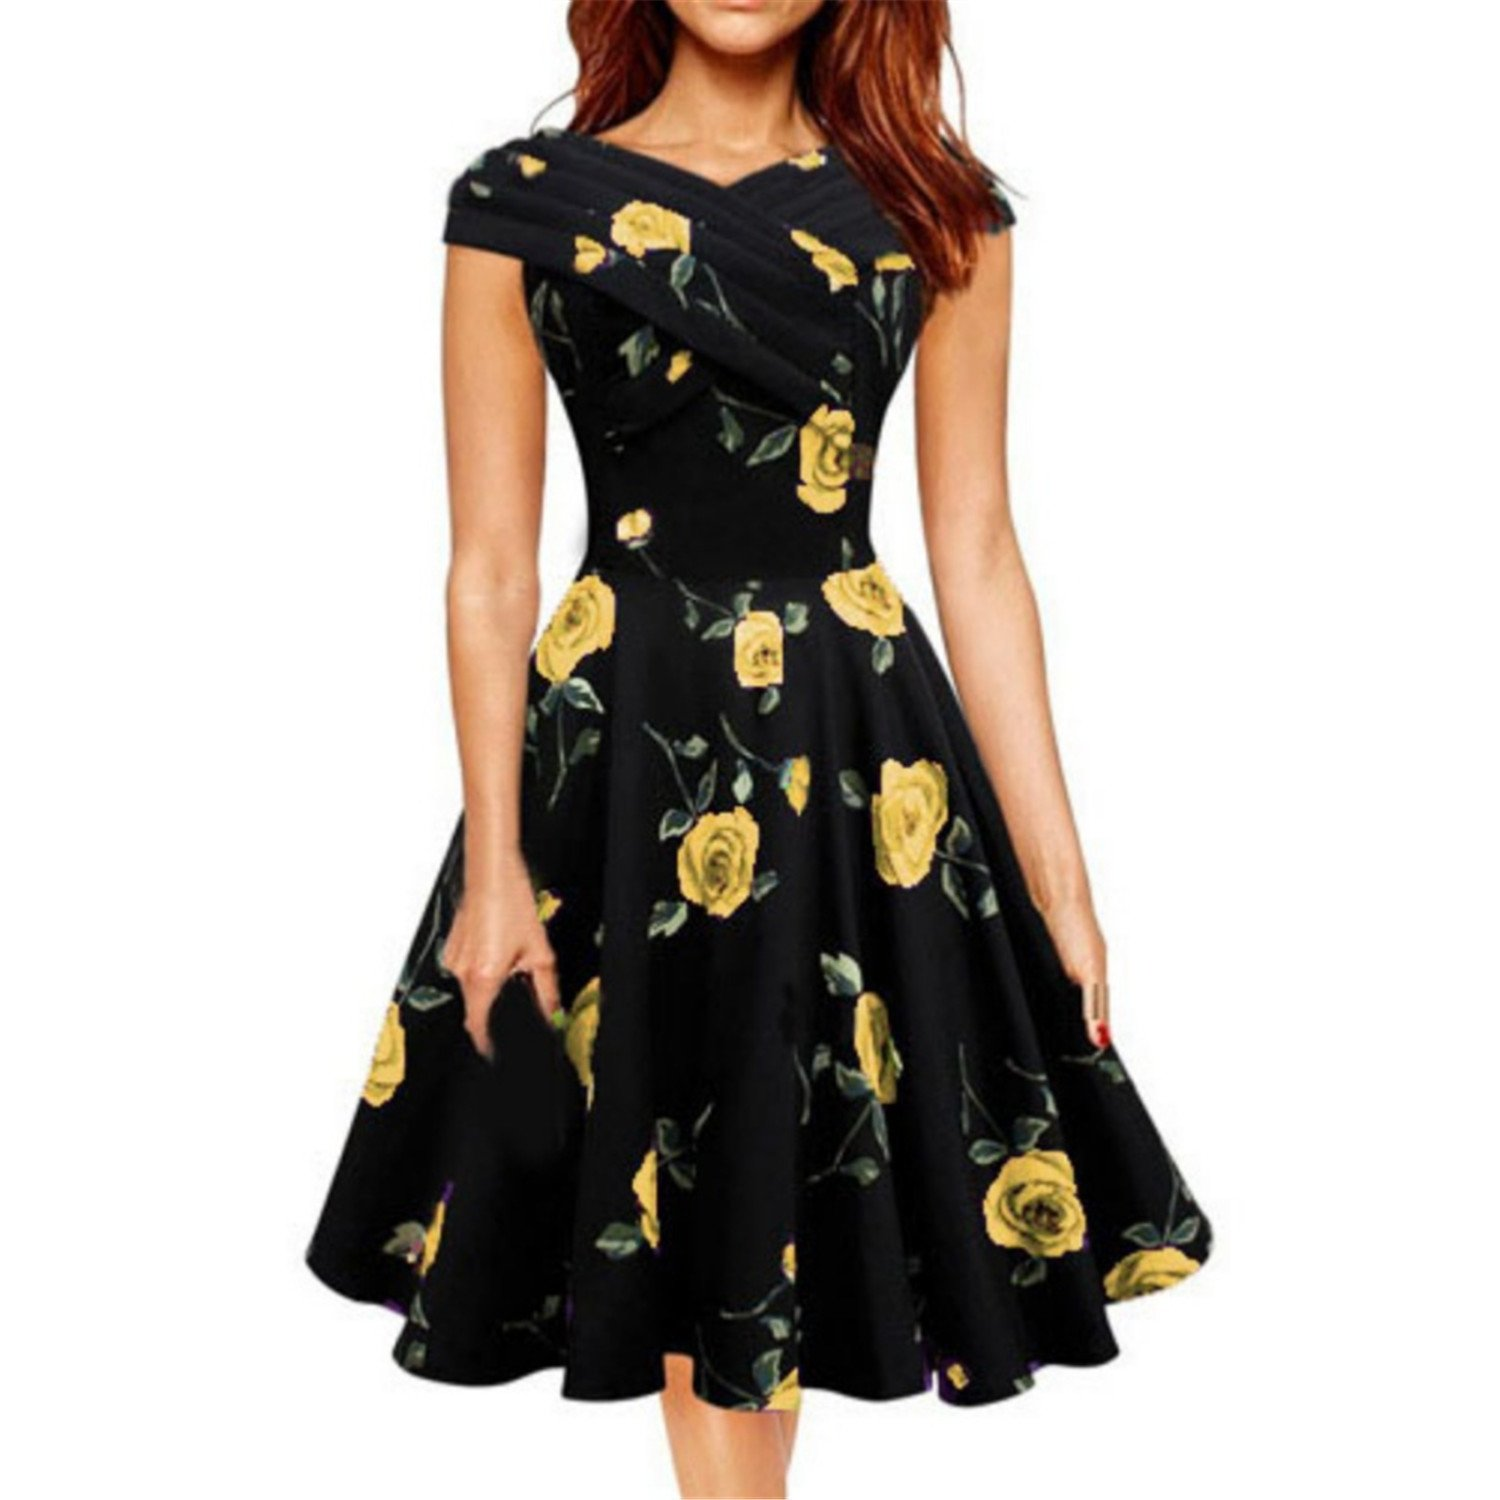 4a08fe67a7b9 Processes 2018 Rose Flower Print Vintage Mini Dress Formal A-Line Party  Casual Retro Dresses Summer Sundress at Amazon Women's Clothing store: